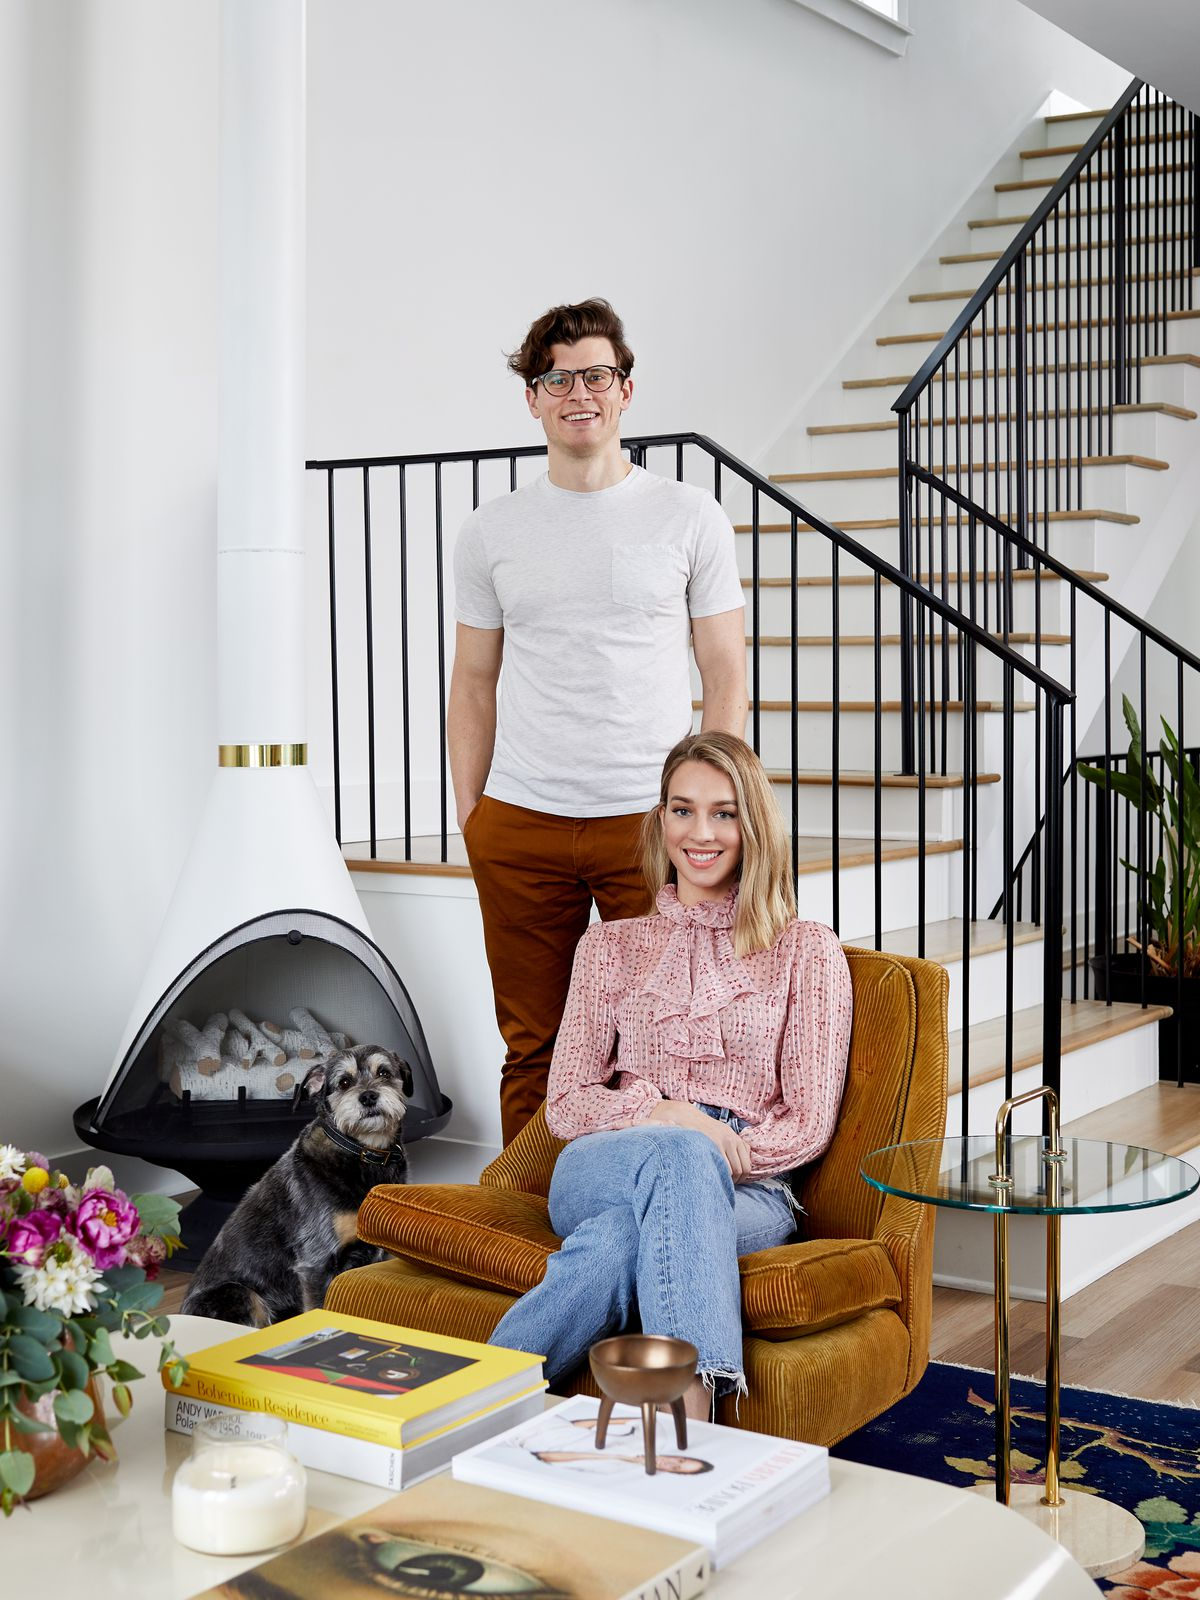 The homeowners, a man and a woman in their living room. The woman sits on an orange armchair. The man stands behind her. Behind them is a staircase. There is a dog sitting beside the woman.